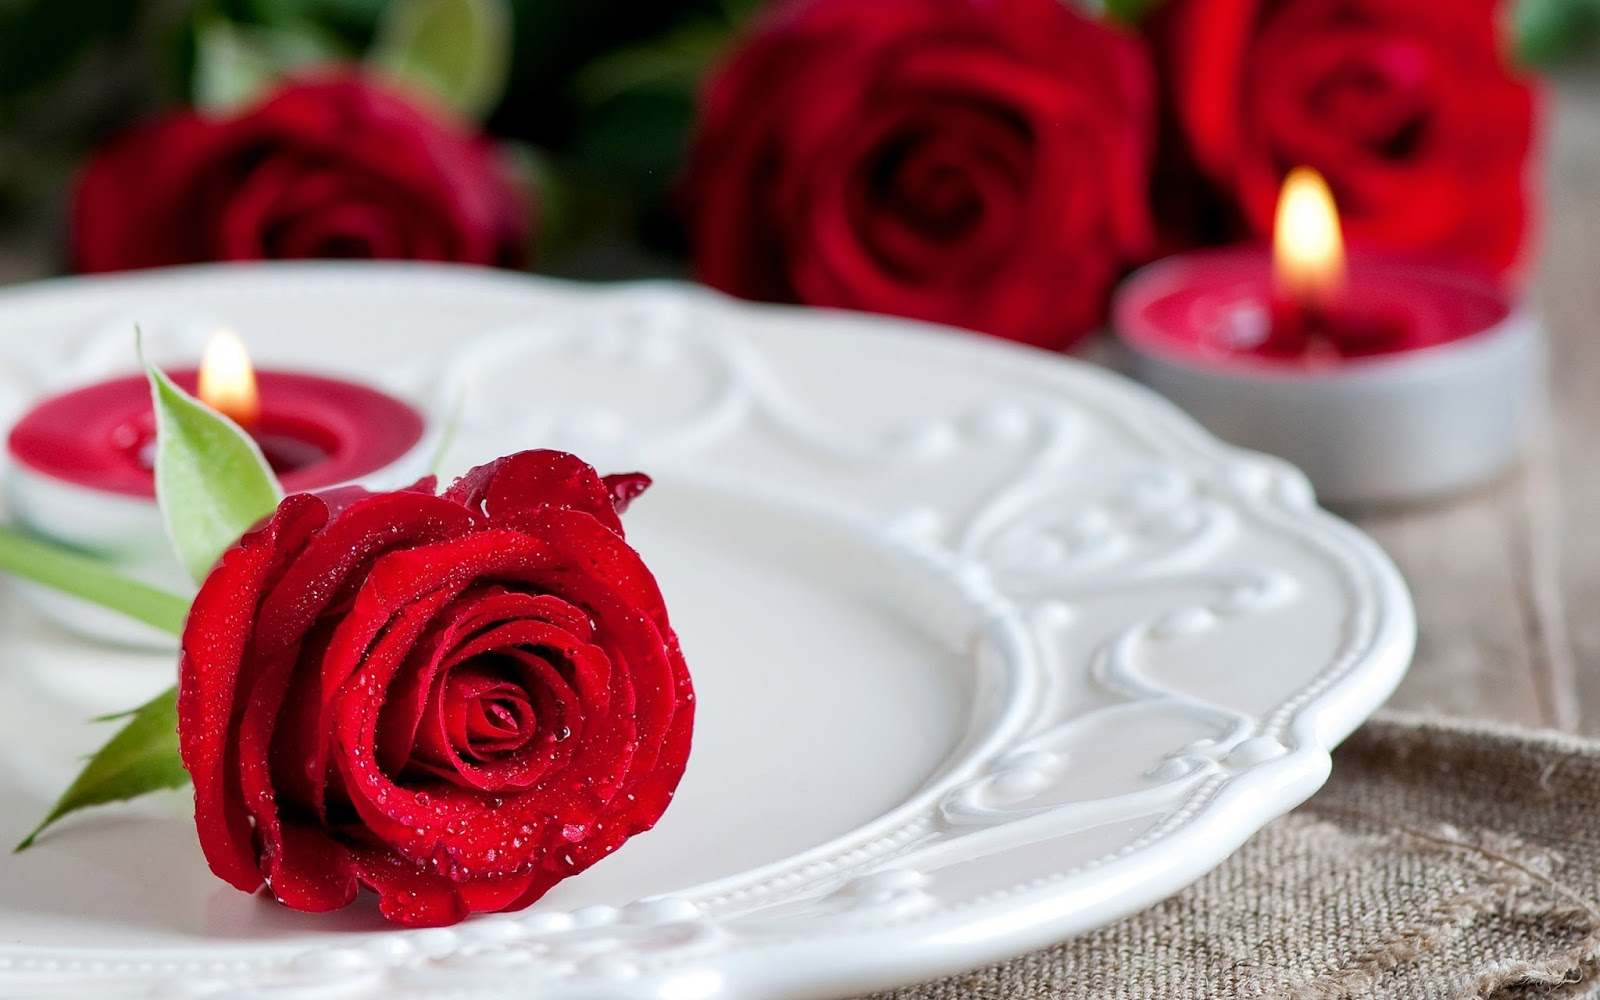 Red Rose on a Plate Wallpaper HD